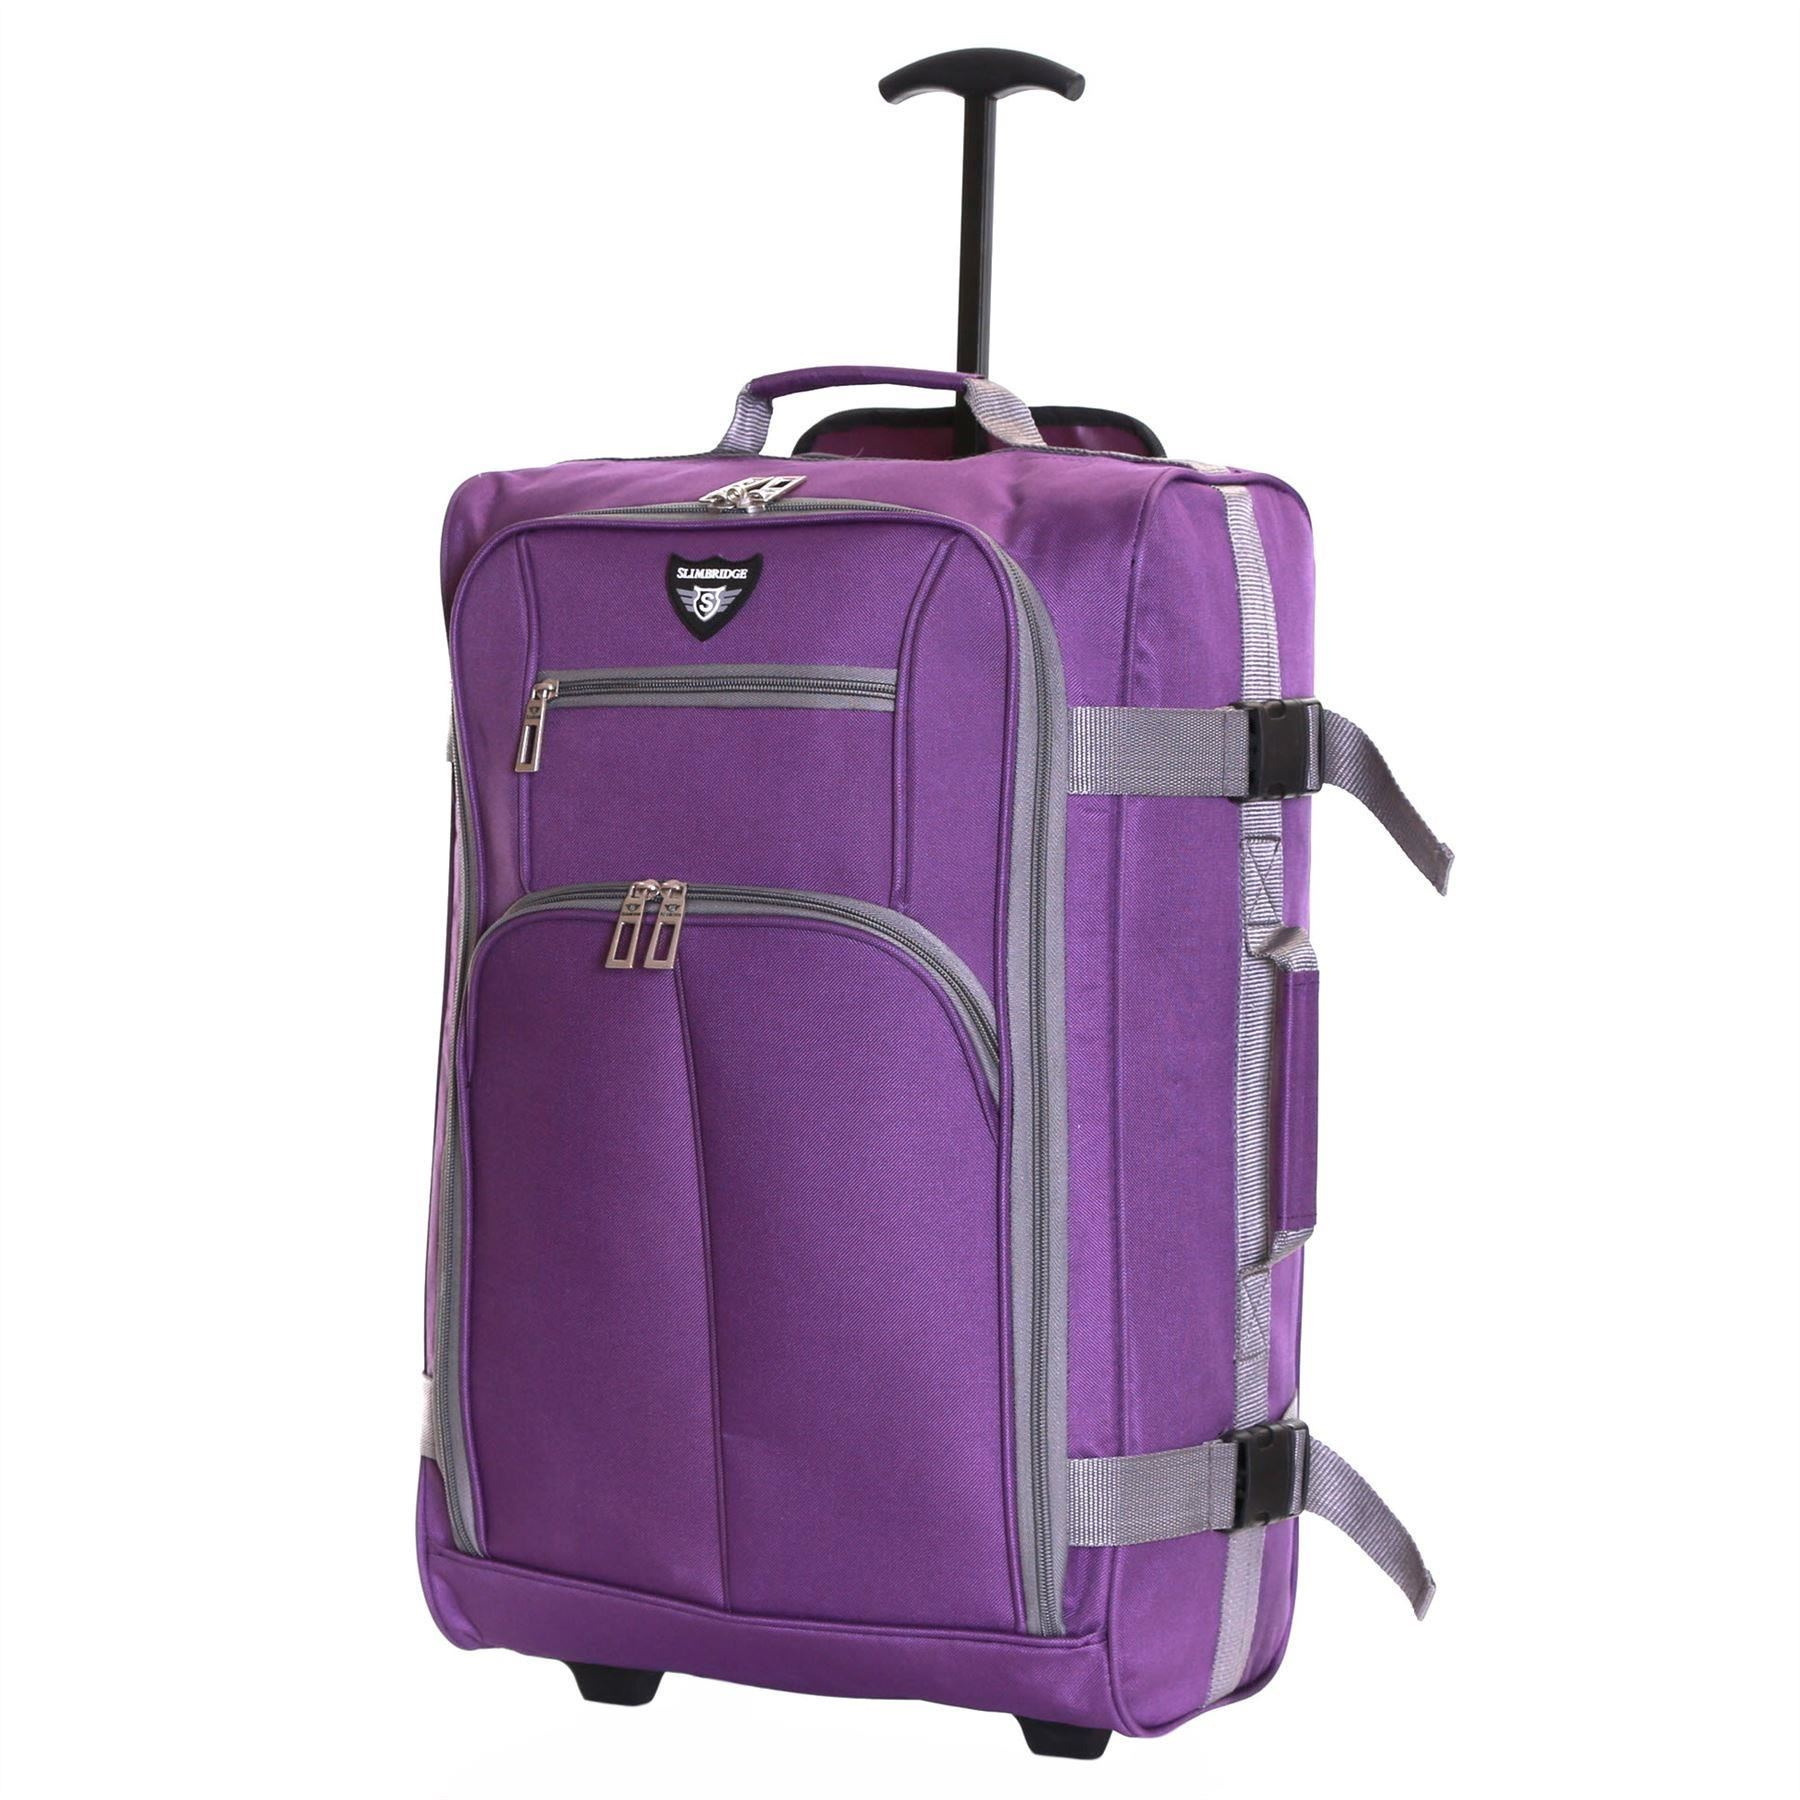 Ryanair-Easyjet-Set-of-2-Cabin-Approved-Hand-Trolley-Suitcases-Luggage-Case-Bags thumbnail 26